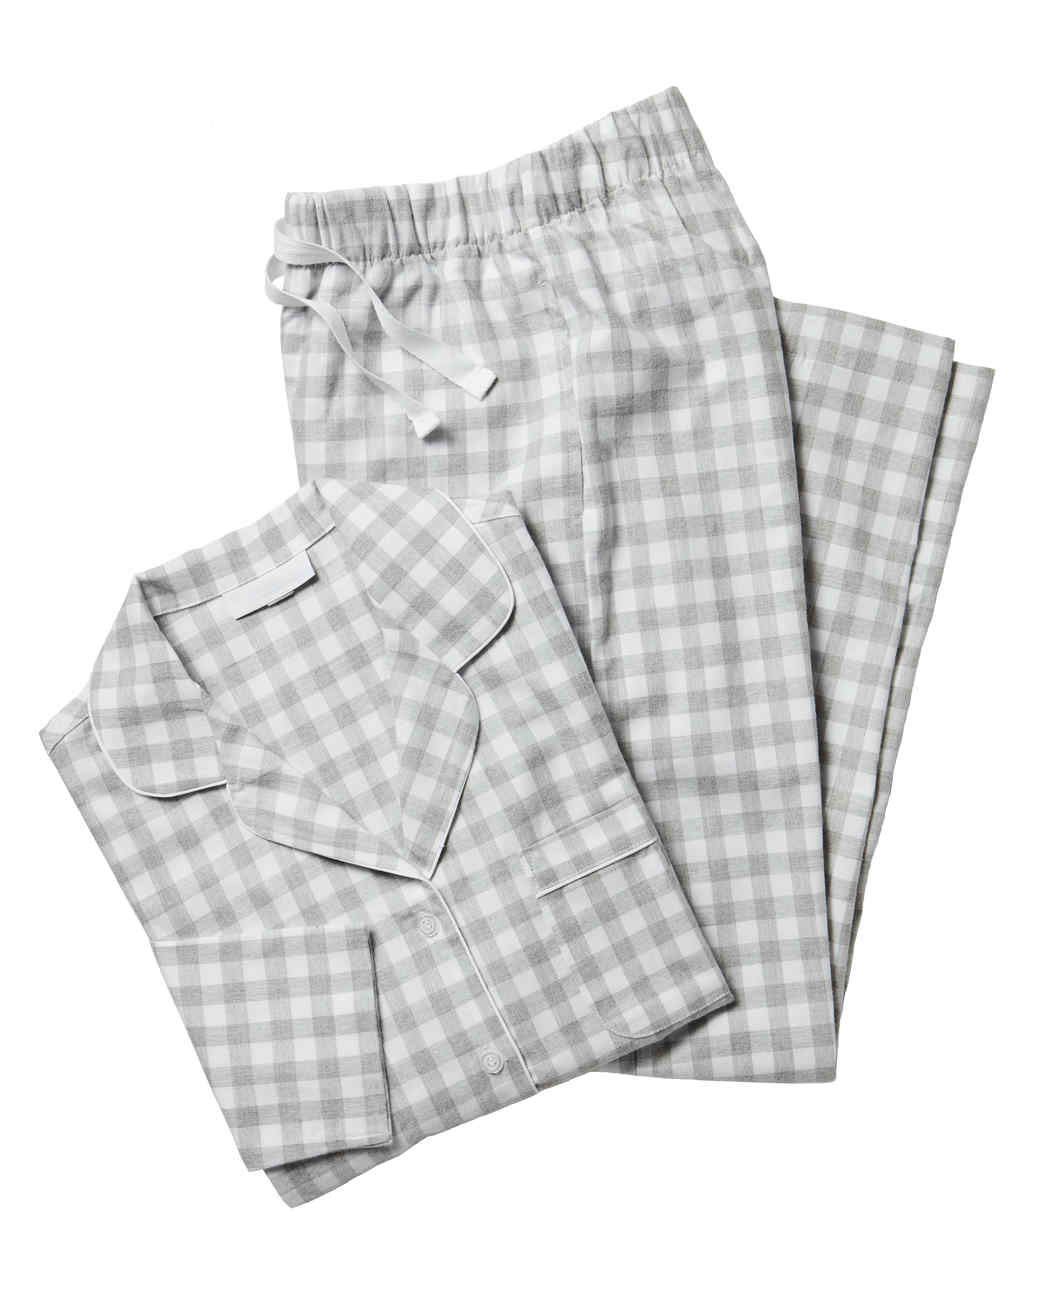 brushed cotton gingham pajama set gift